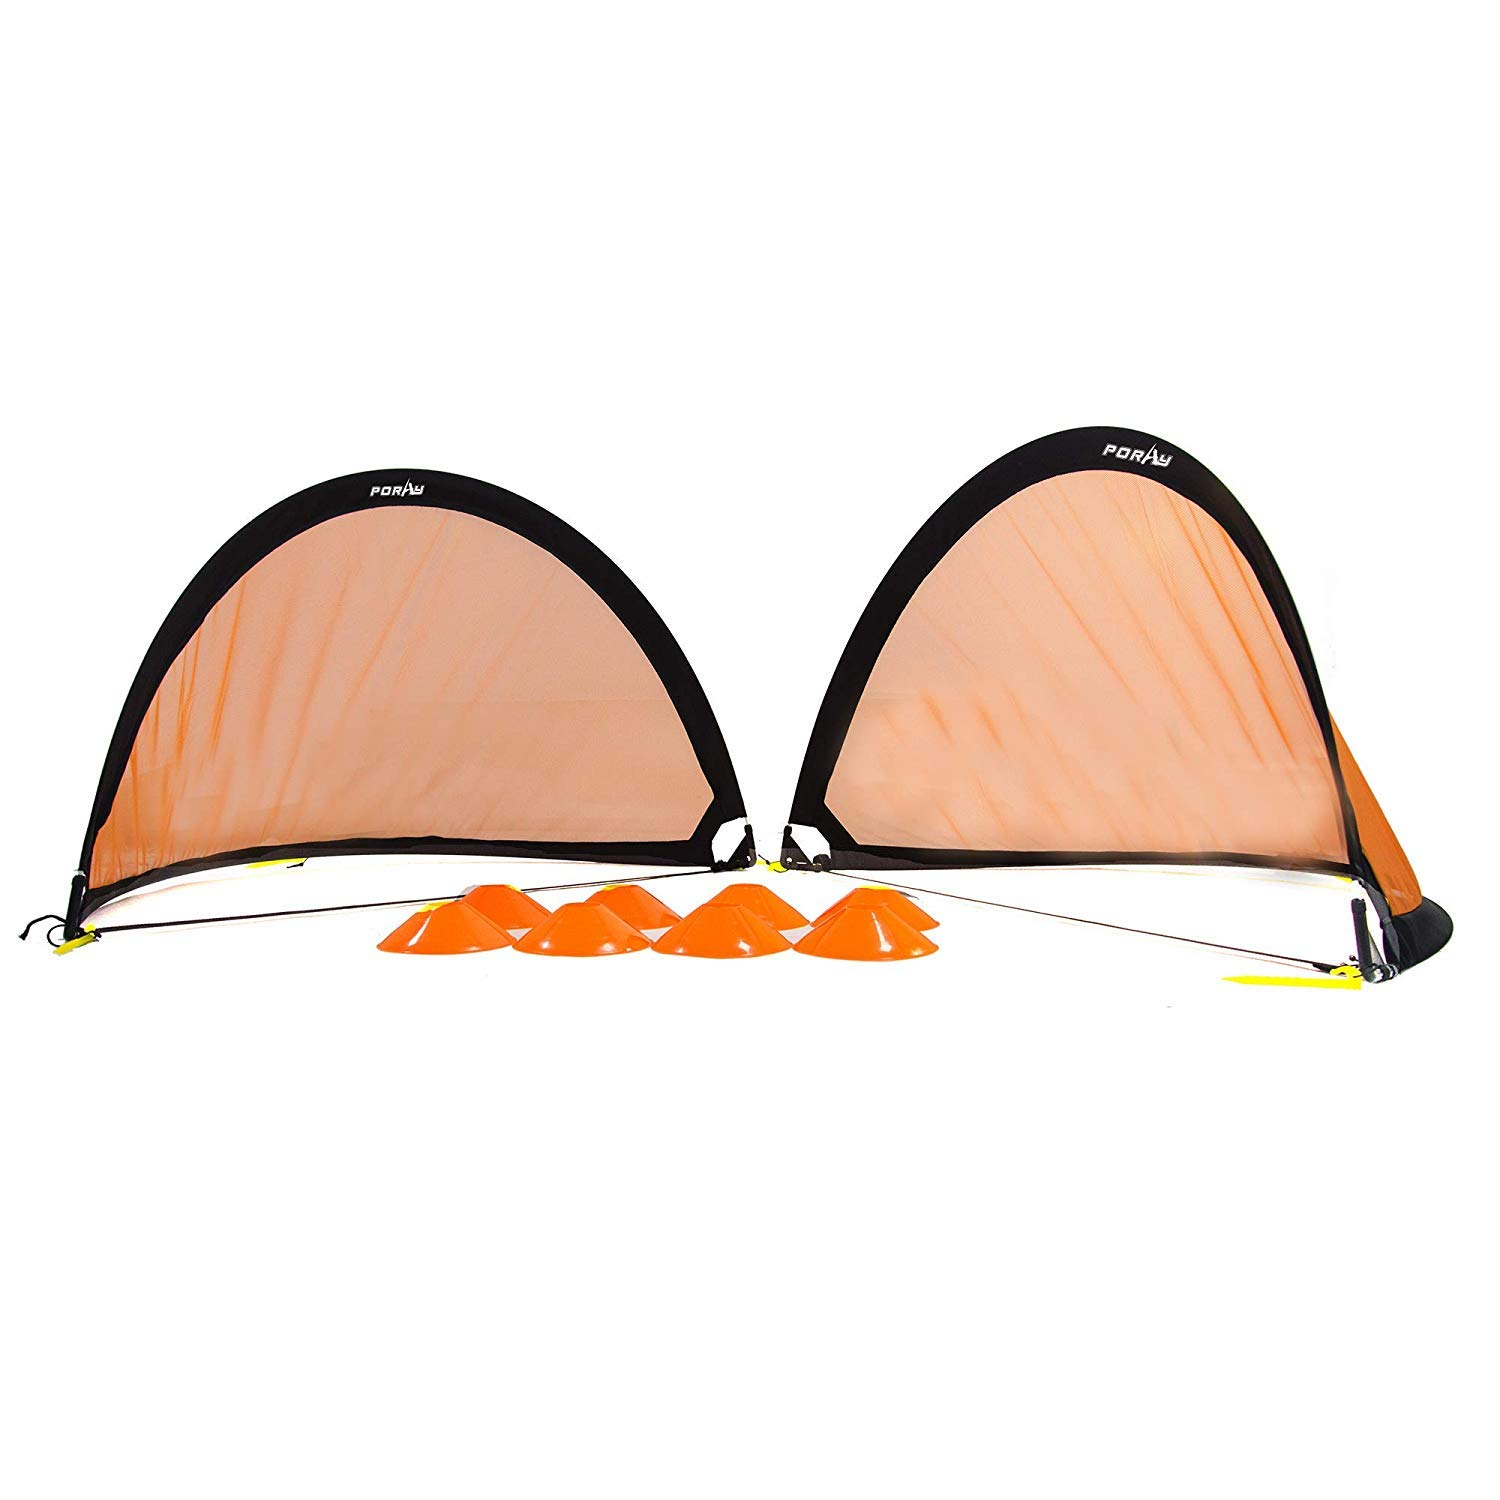 Poray Soccer Goal for Kid,Easy-up Set of Two 2 Portable 4FT Goal,Pop-up Soccer Nets with 210D Oxford Carry Bag and 8 Field Marker Cones Extra Metal Pegs. Fun for Parks or Backyard Training (Black) Poray sports